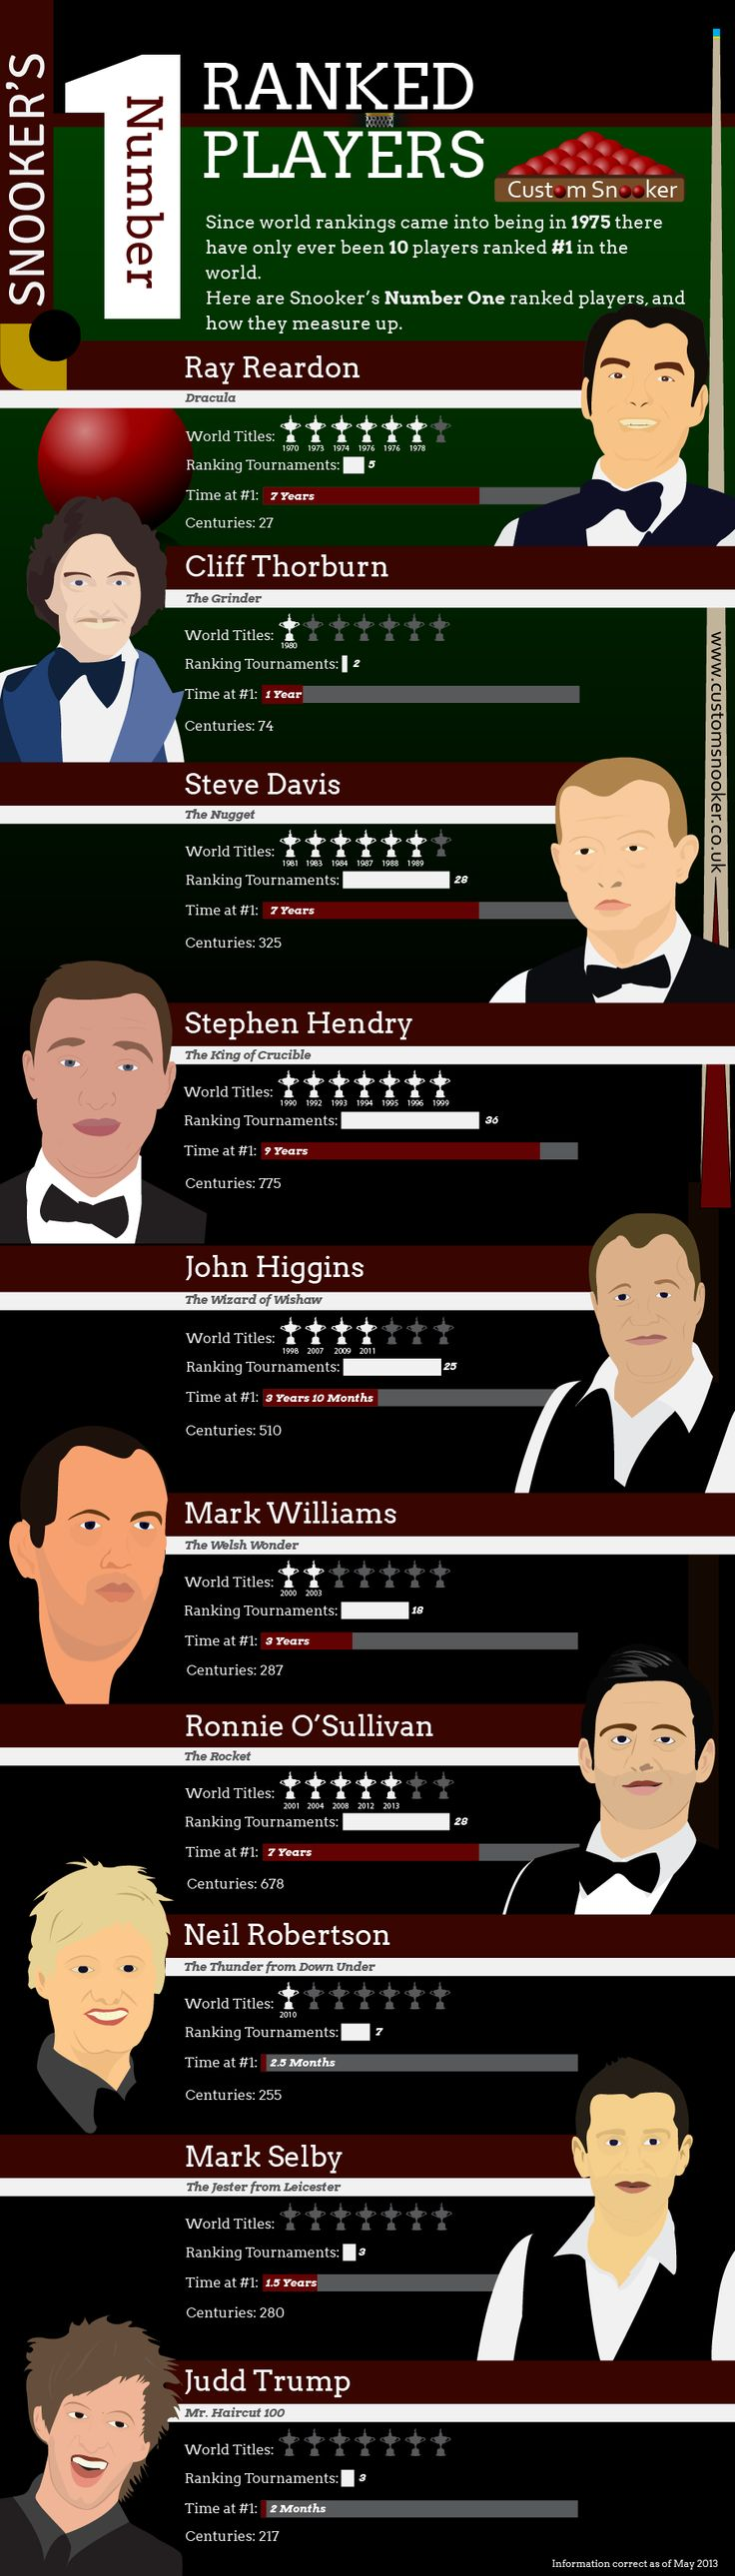 Quality infographic showing the 10 snooker players who have been ranked #1 in the world of snooker since 1975.